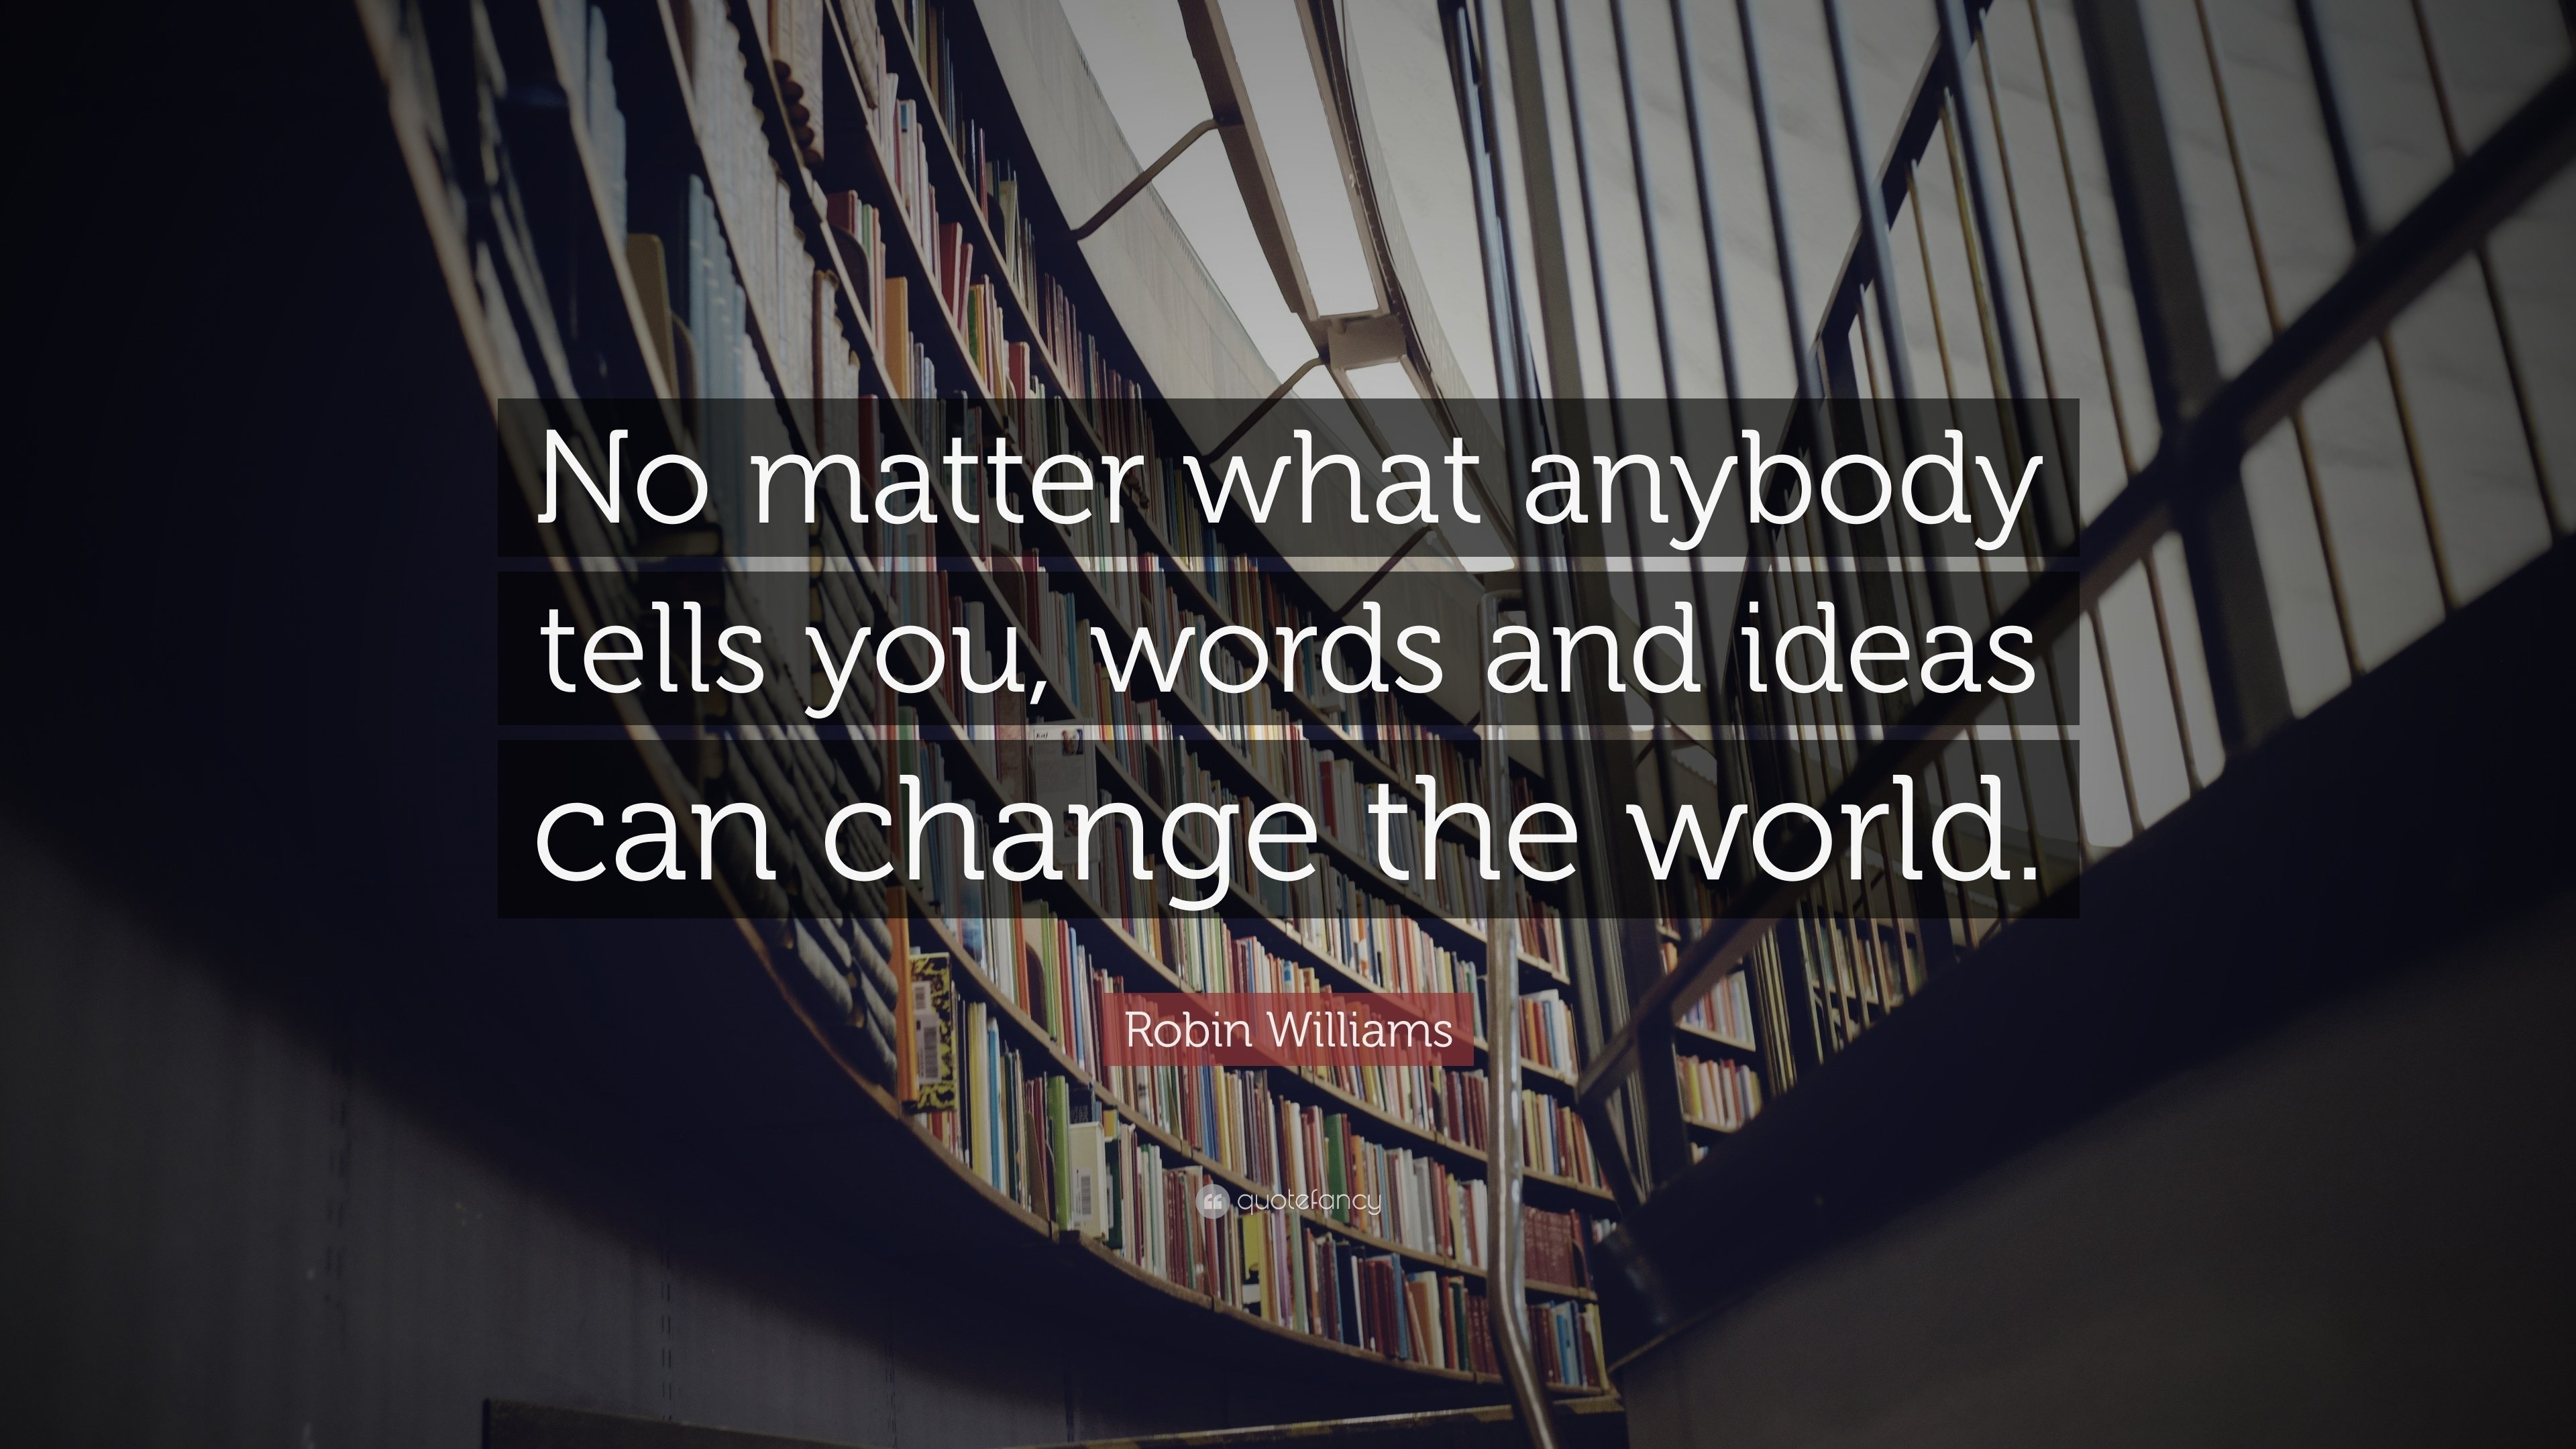 10 Lovely Words And Ideas Can Change The World robin williams quote no matter what anybody tells you words and 2 2021